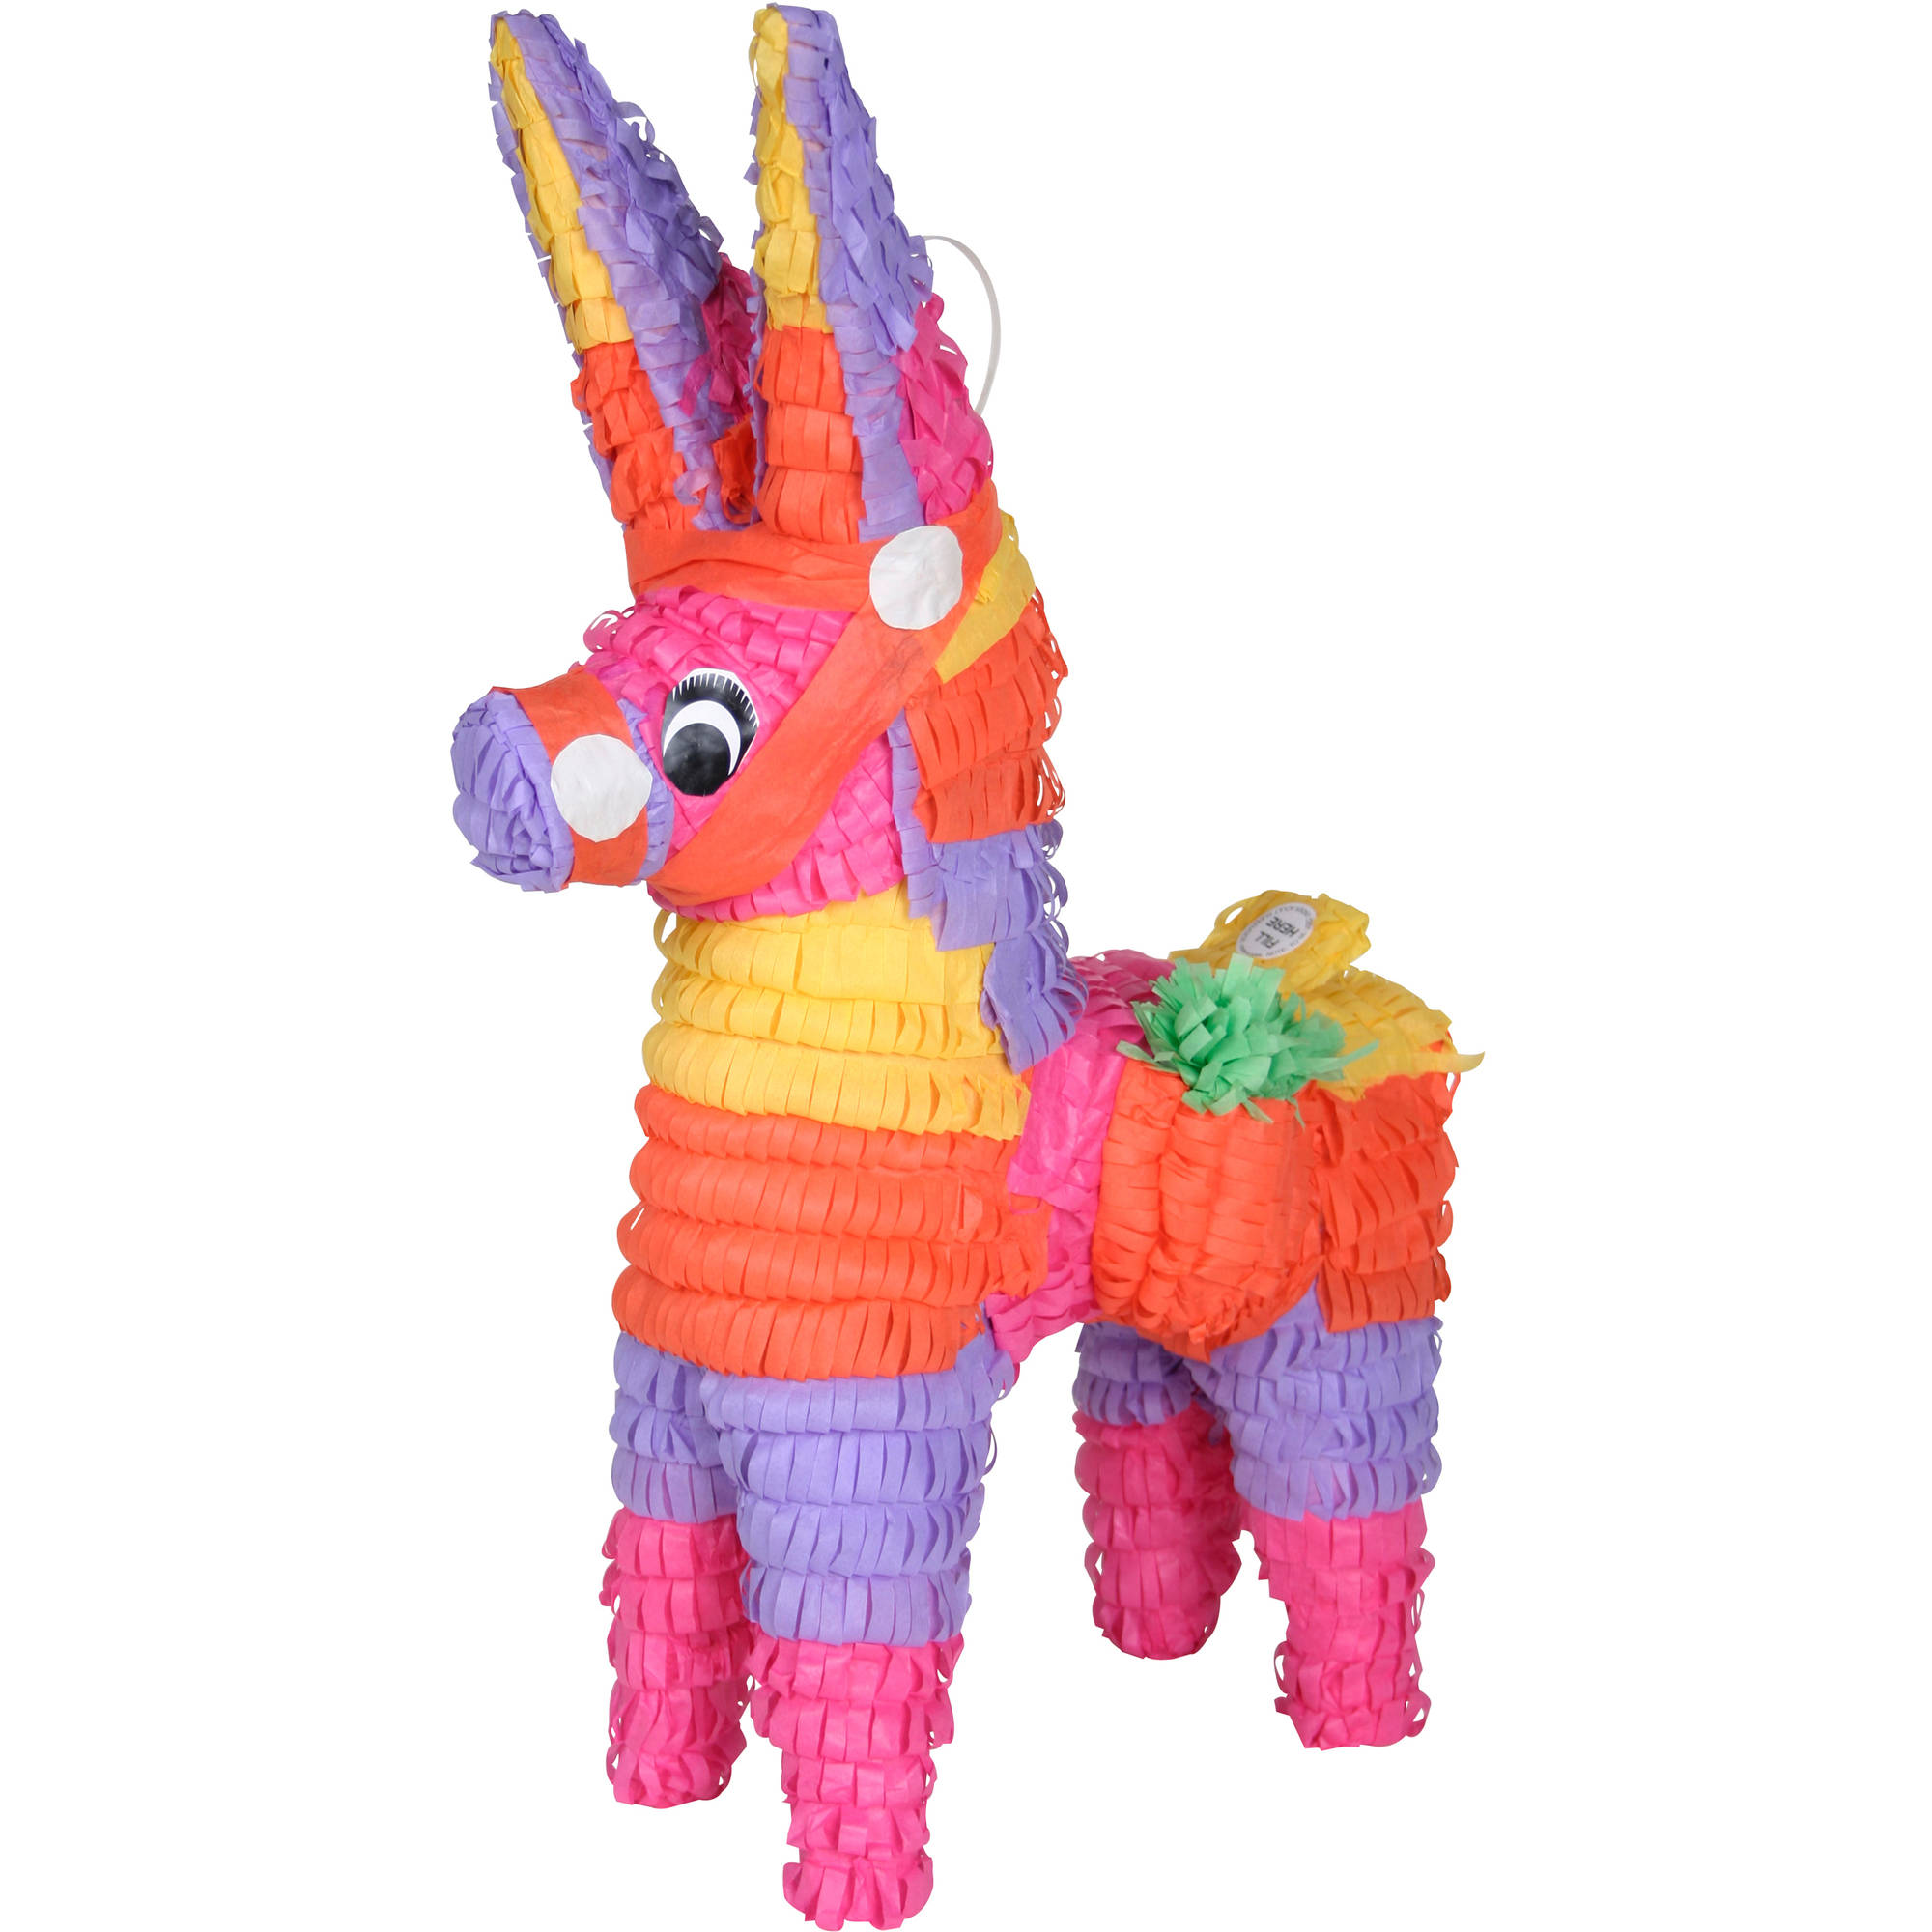 Donkey Party Piñata, Hand Crafted with Traditional Techniques